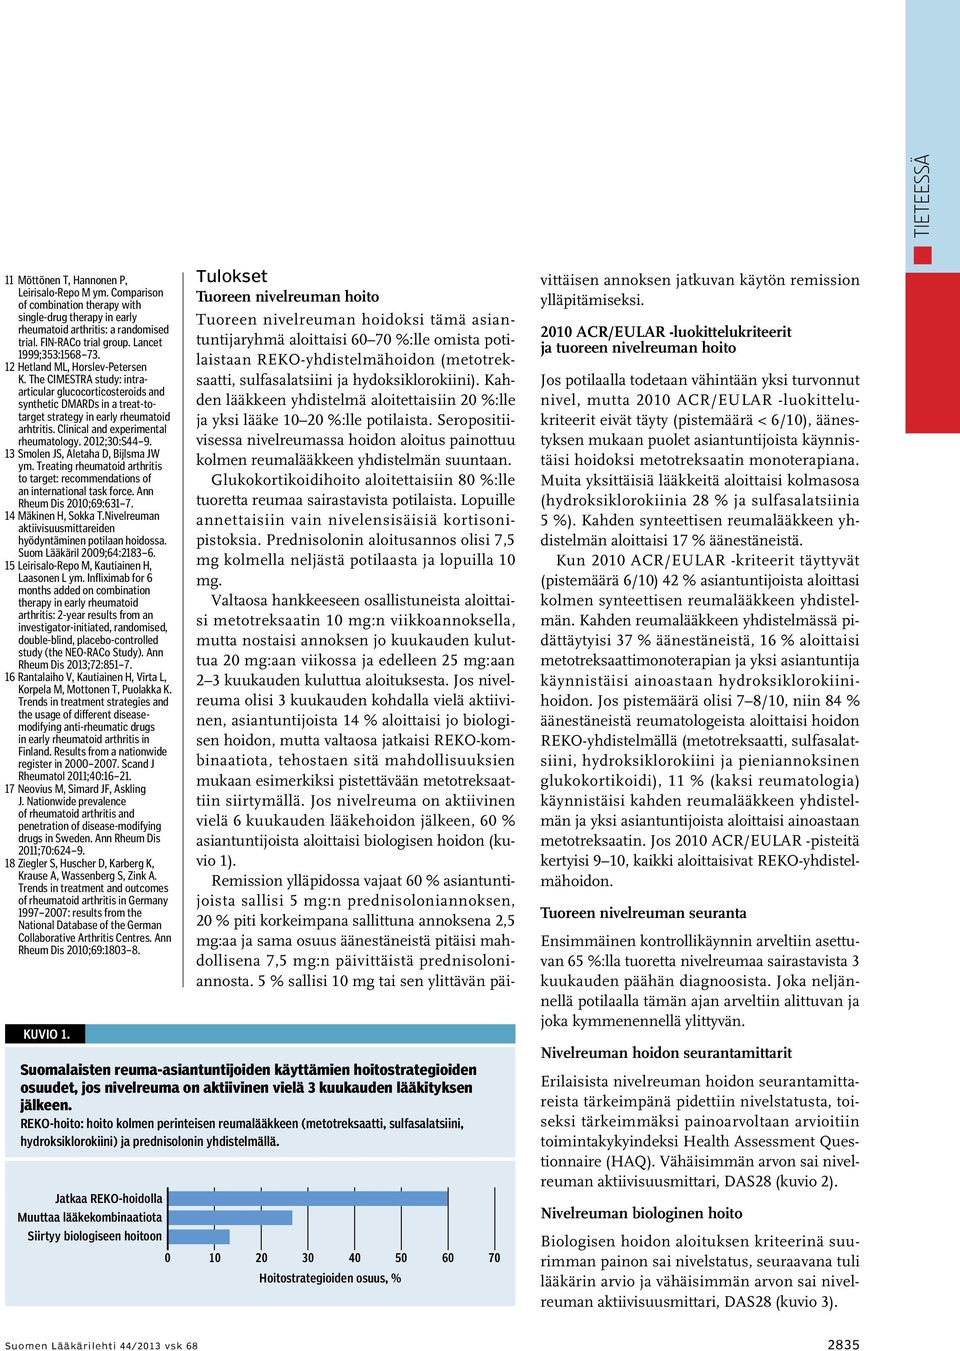 Clinical and experimental rheumatology. 2012;30:S44 9. 13 Smolen JS, Aletaha D, Bijlsma JW ym. Treating rheumatoid arthritis to target: recommendations of an international task force.